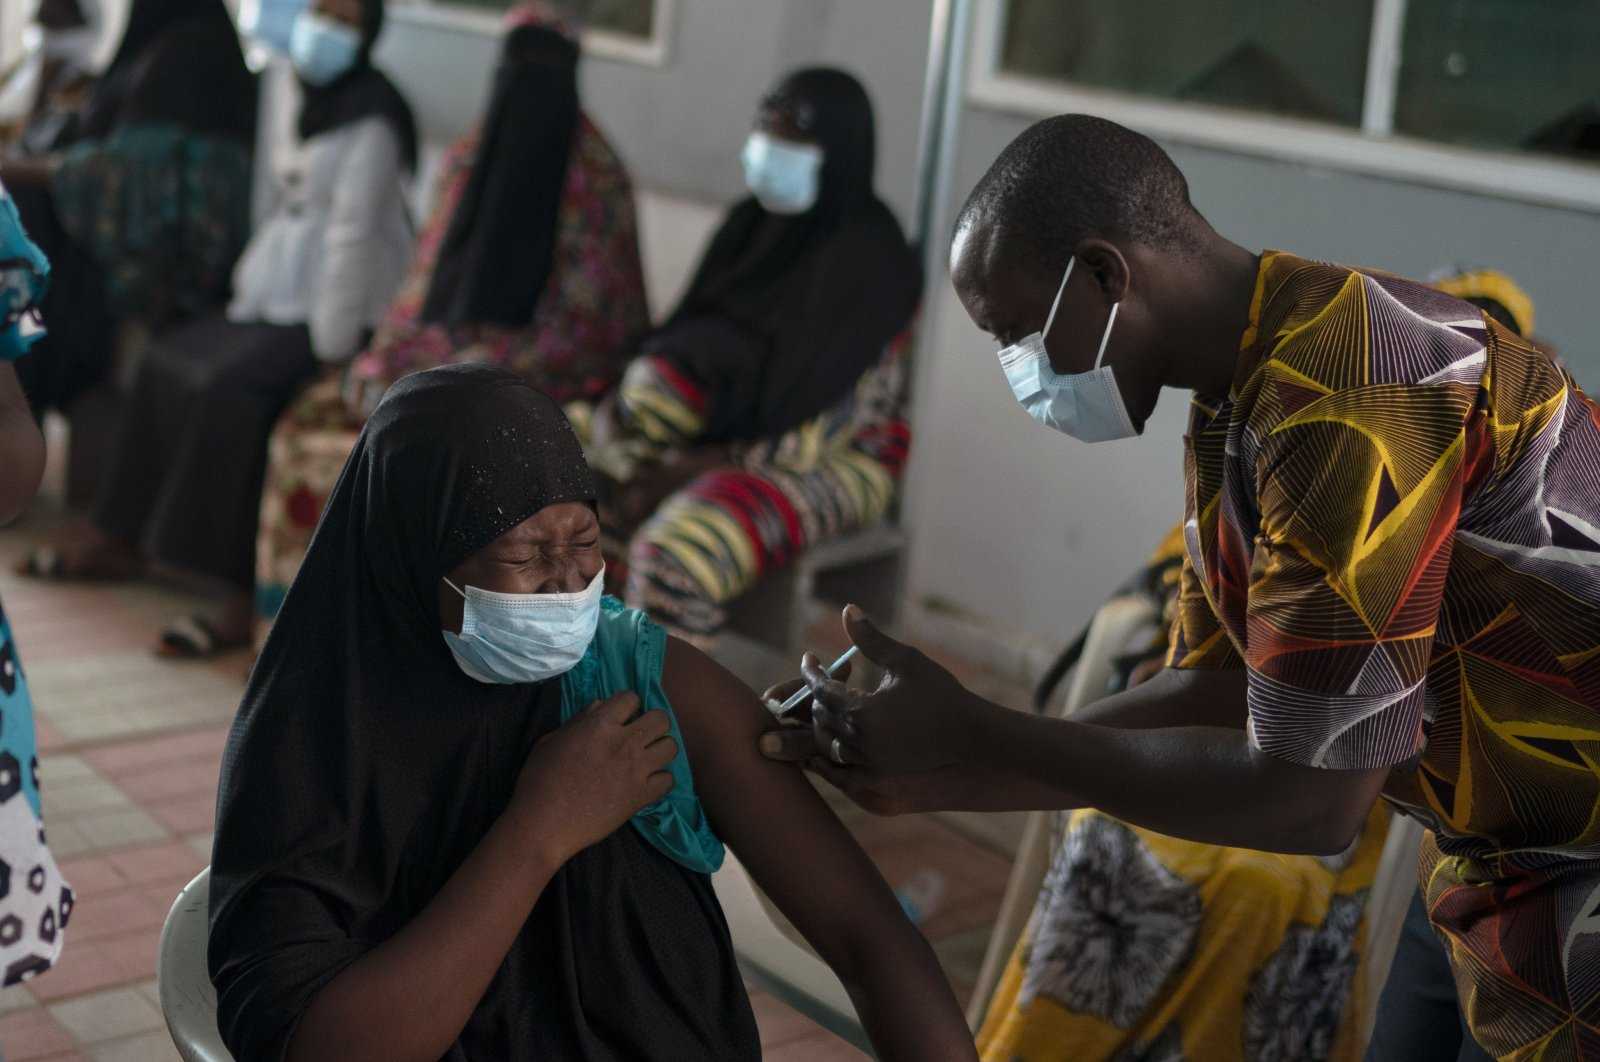 A health worker administers a dose of the Johnson & Johnson COVID-19 vaccine at the Bundung Maternal and Child Health Hospital in Serrekunda, outskirts of Banjul, Gambia, Sept. 23, 2021. (AP Photo)